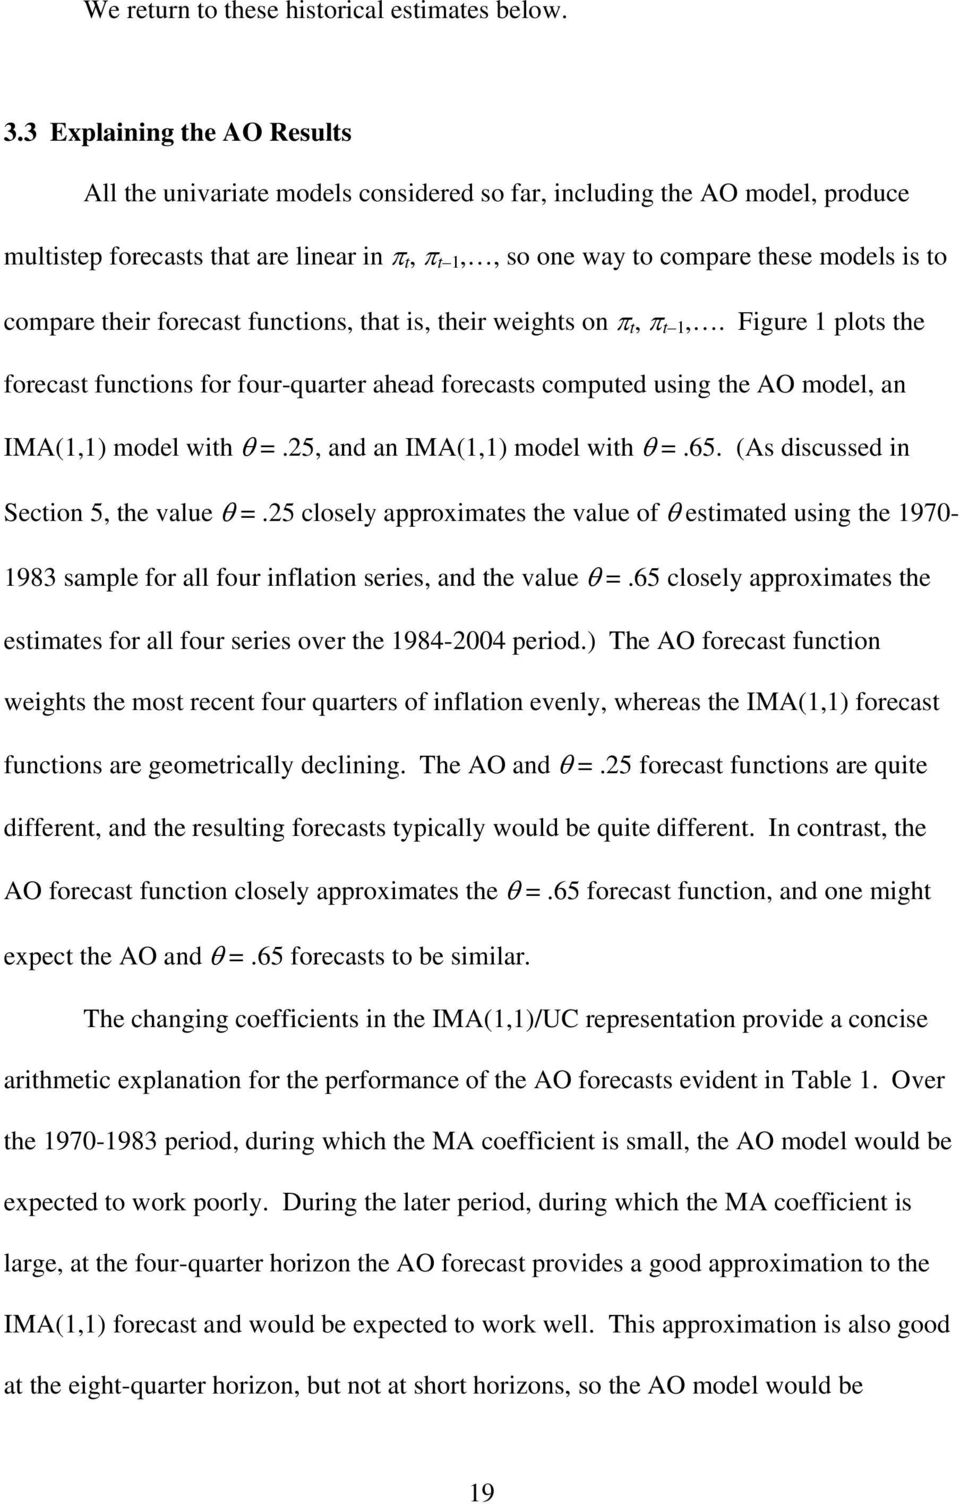 compare their forecast functions, that is, their weights on π t, π t 1,. Figure 1 plots the forecast functions for four-quarter ahead forecasts computed using the AO model, an IMA(1,1) model with θ =.